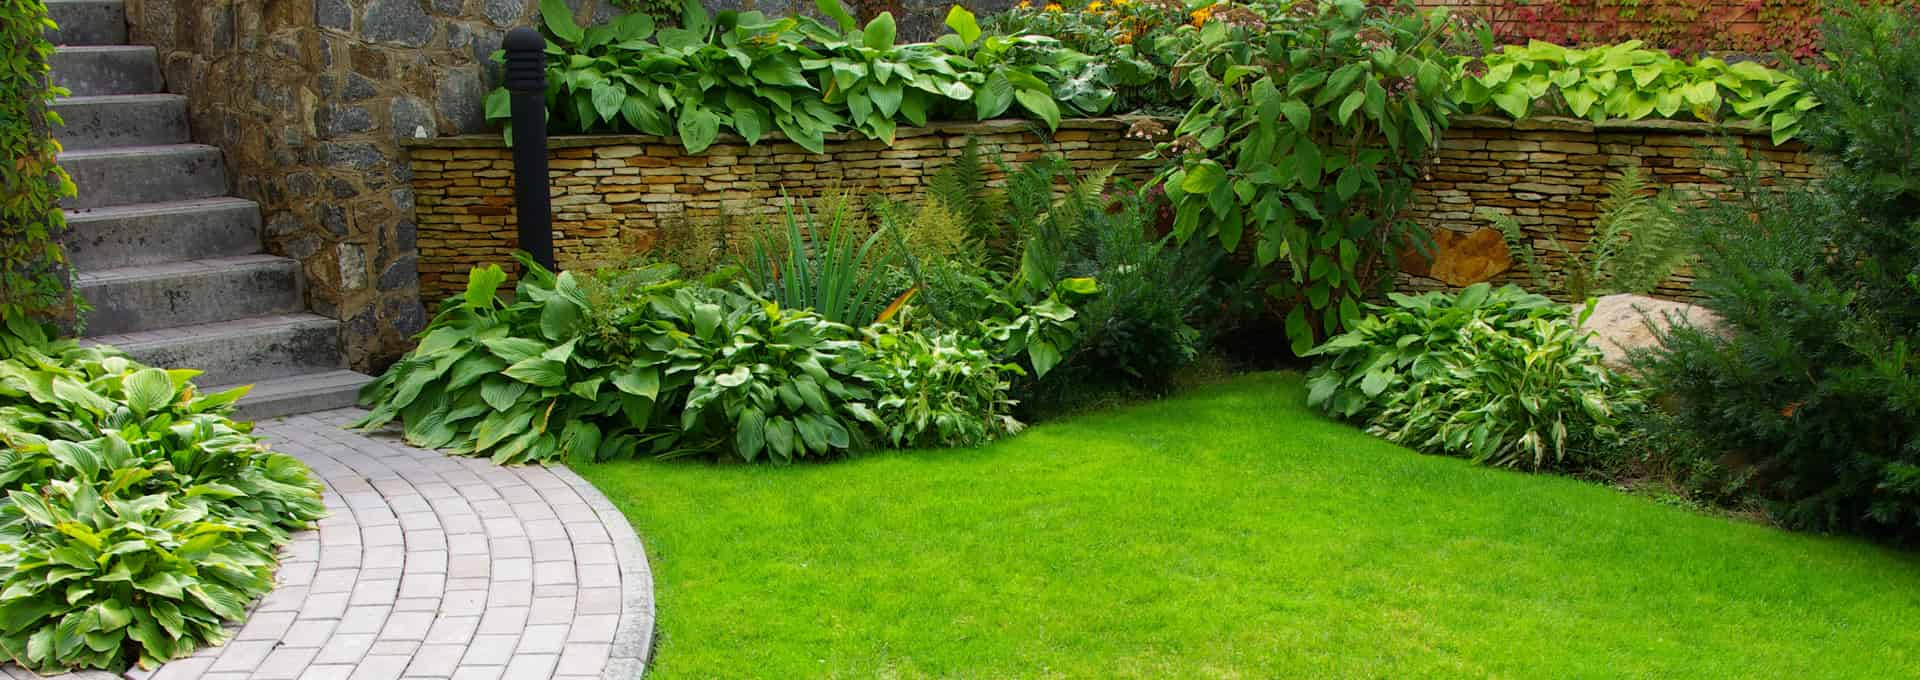 Landscape Gardening South Hams Including Exeter U0026 Plymouth